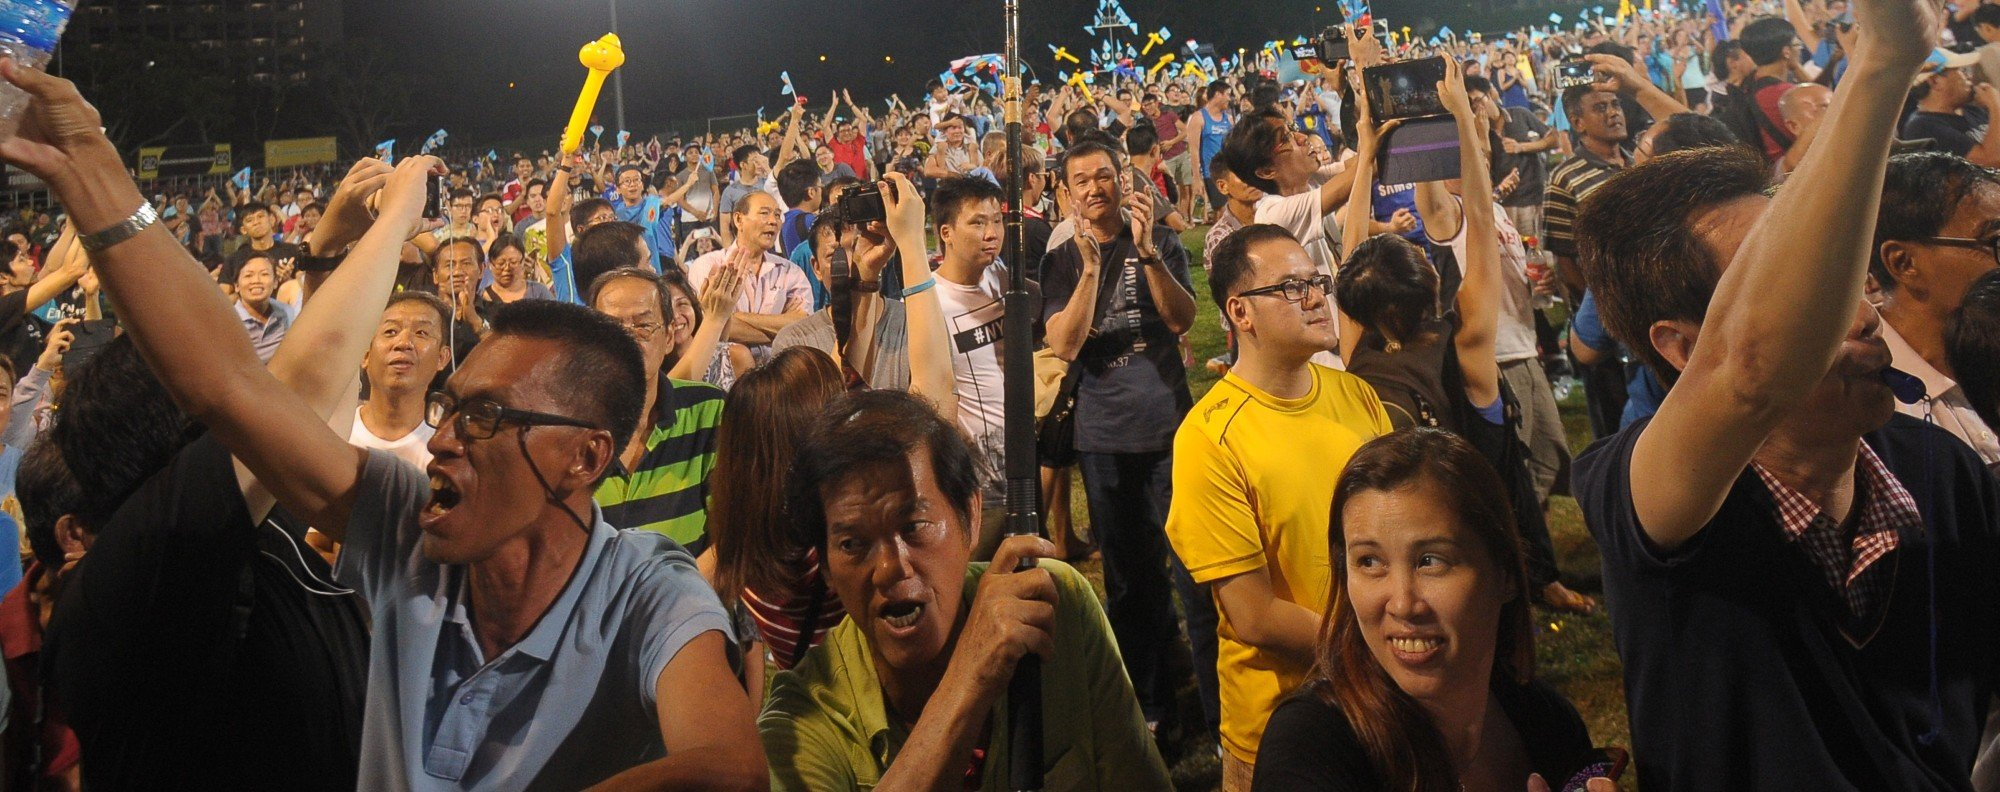 An opposition rally in Singapore. Photo: AFP